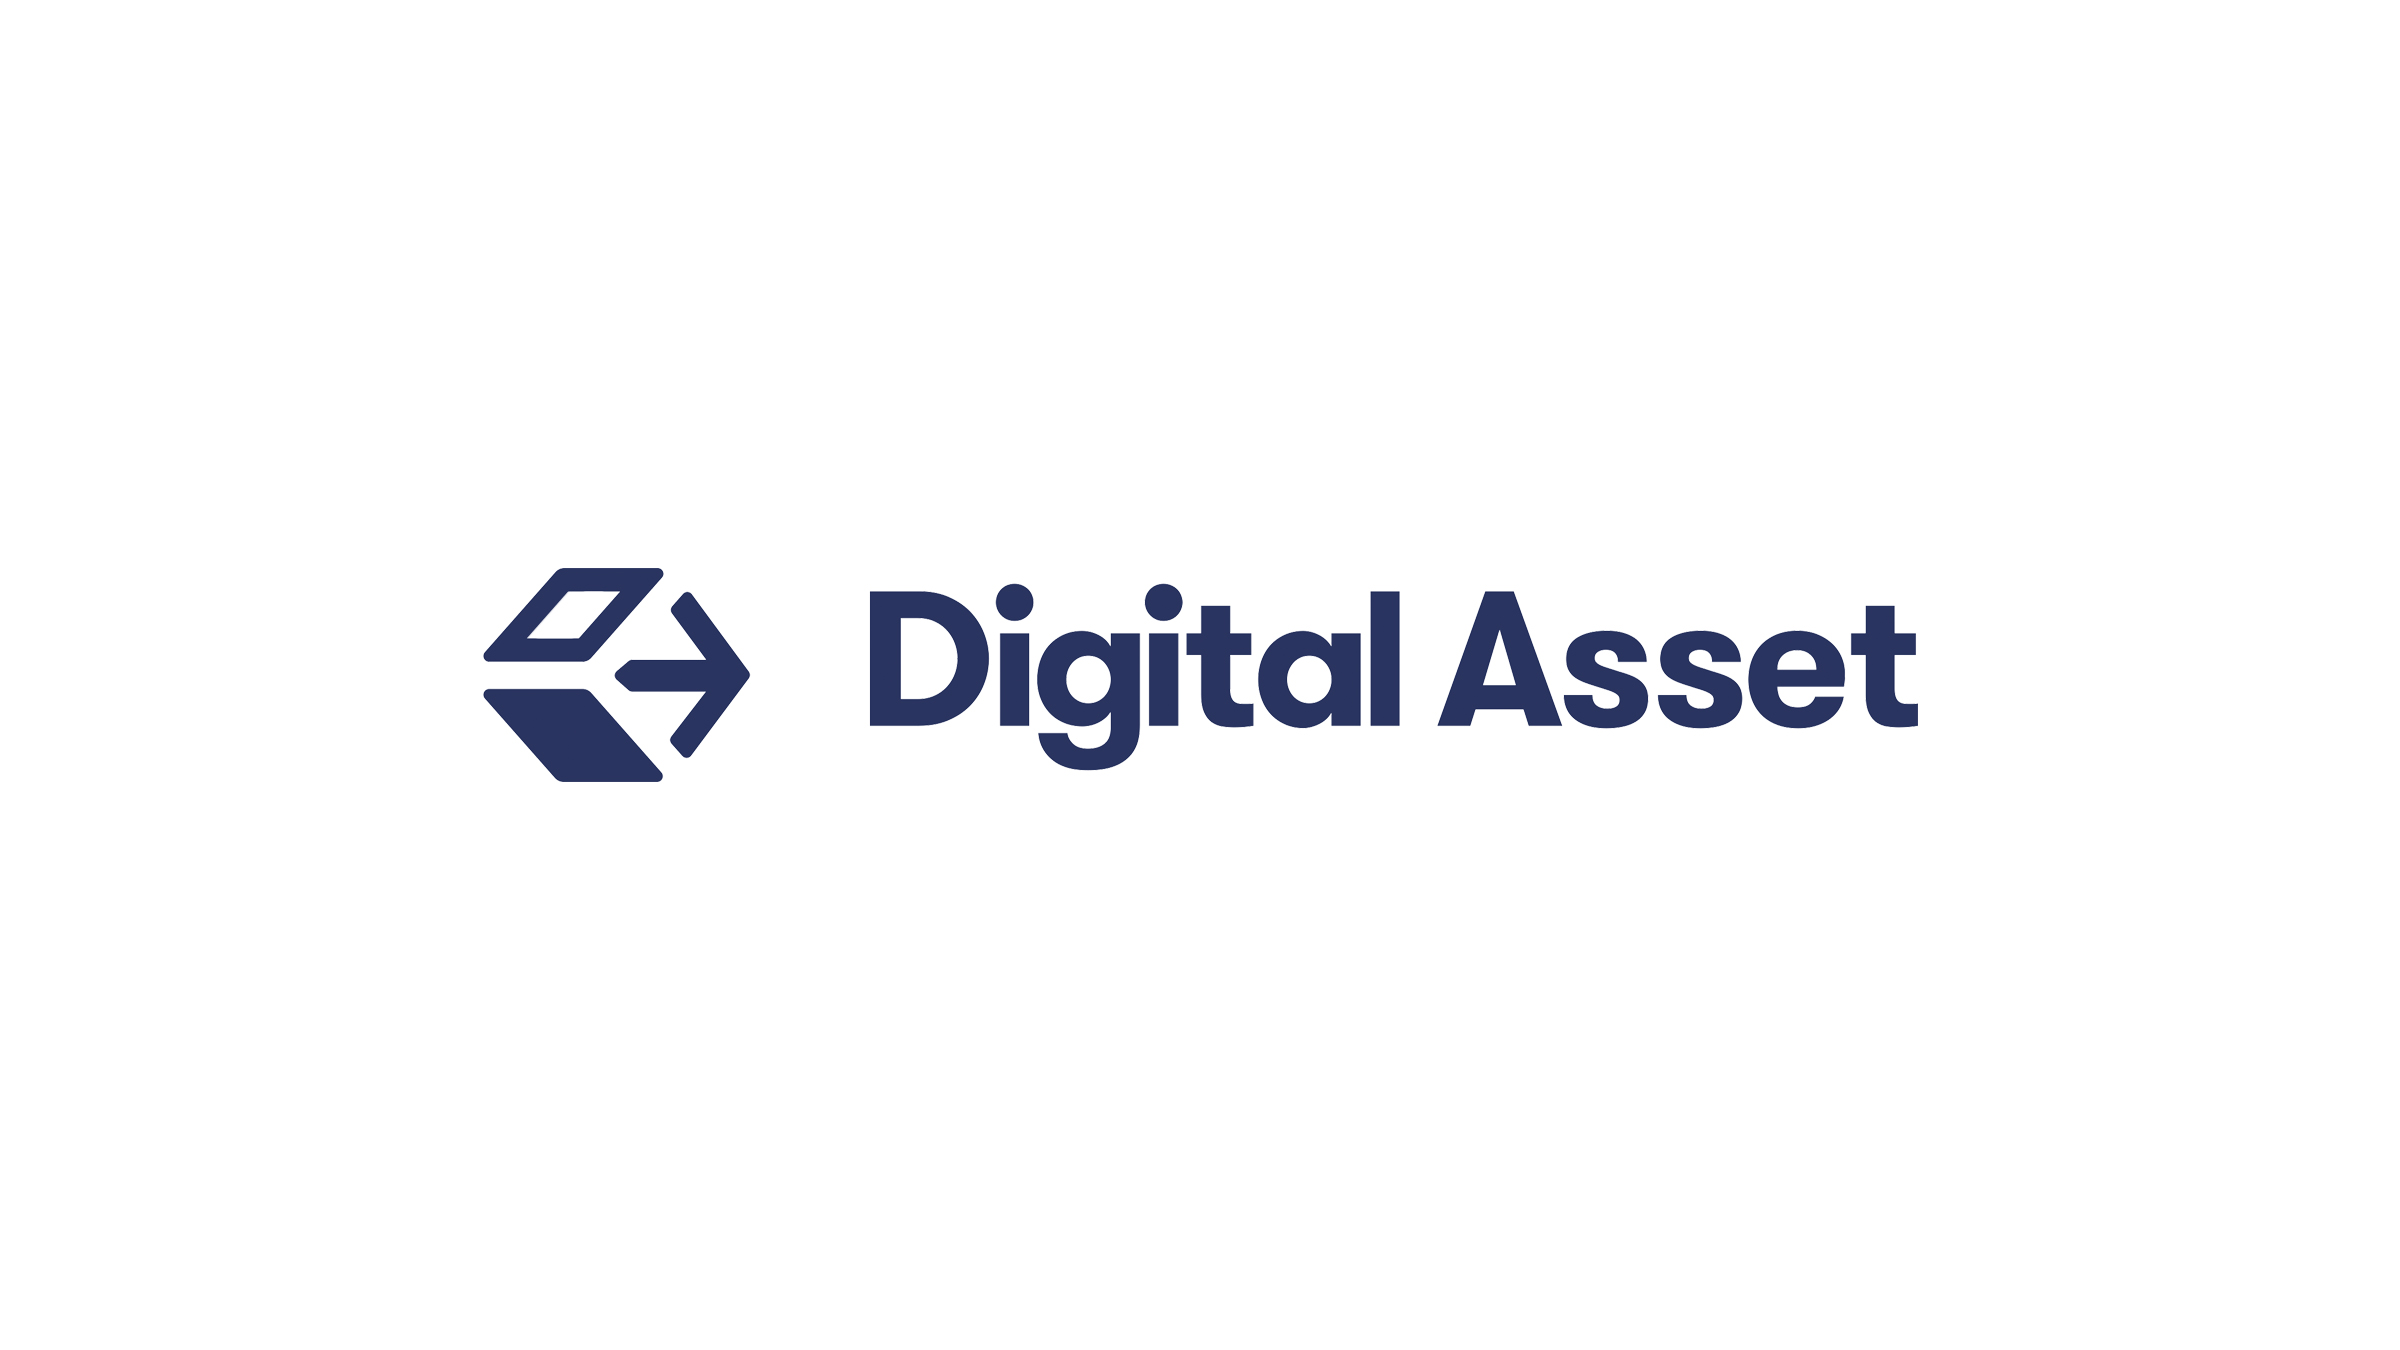 project-thumb-digitalasset.jpg